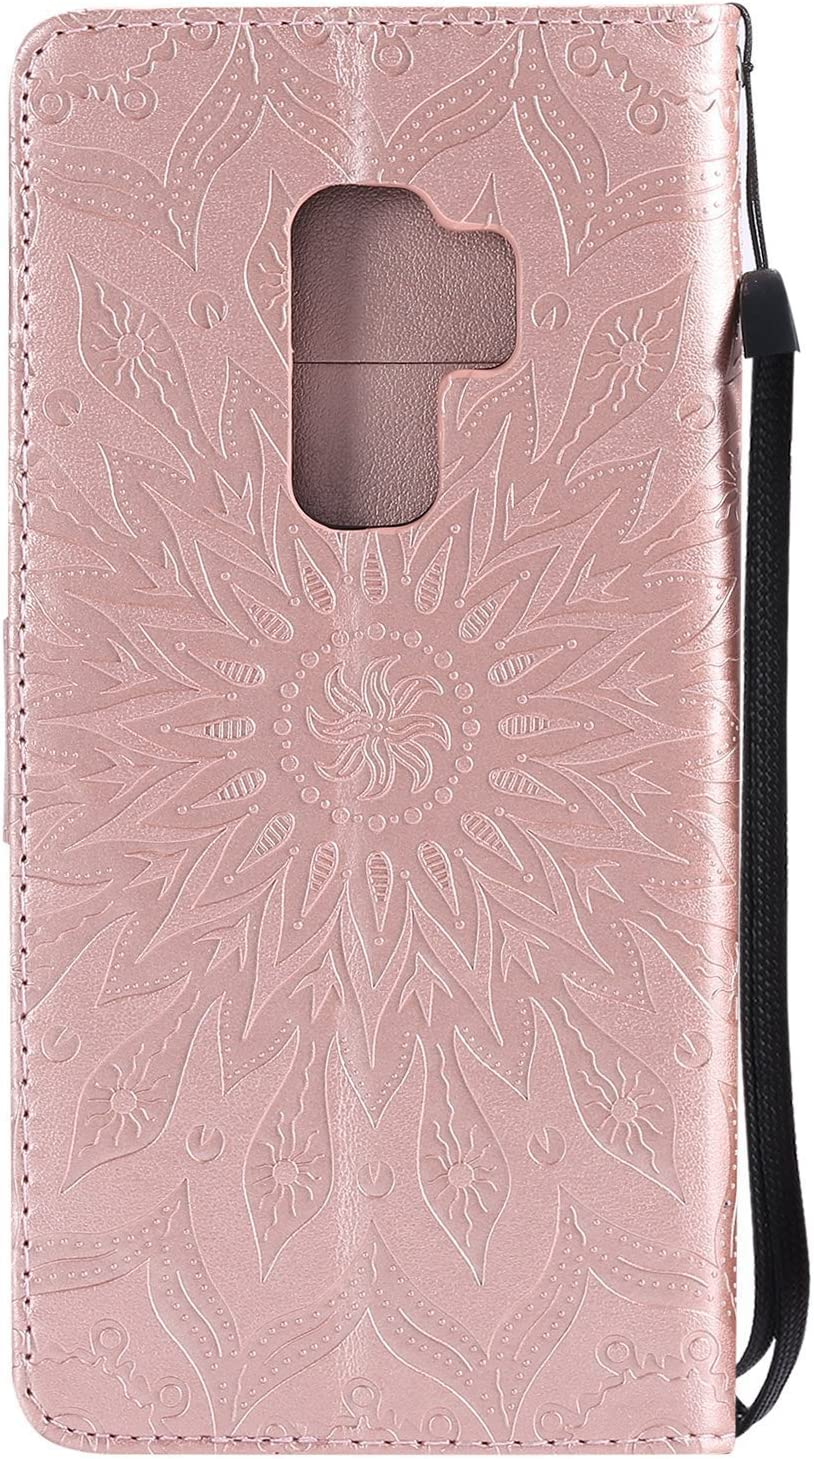 Galaxy S9 Case LEECOCO Embossed Floral Wallet Case with Card//Cash Slots /& Wrist Strap Kickstand Premium PU Leather Folio Flip Case Cover for Samsung Galaxy S9 Mandala Purple